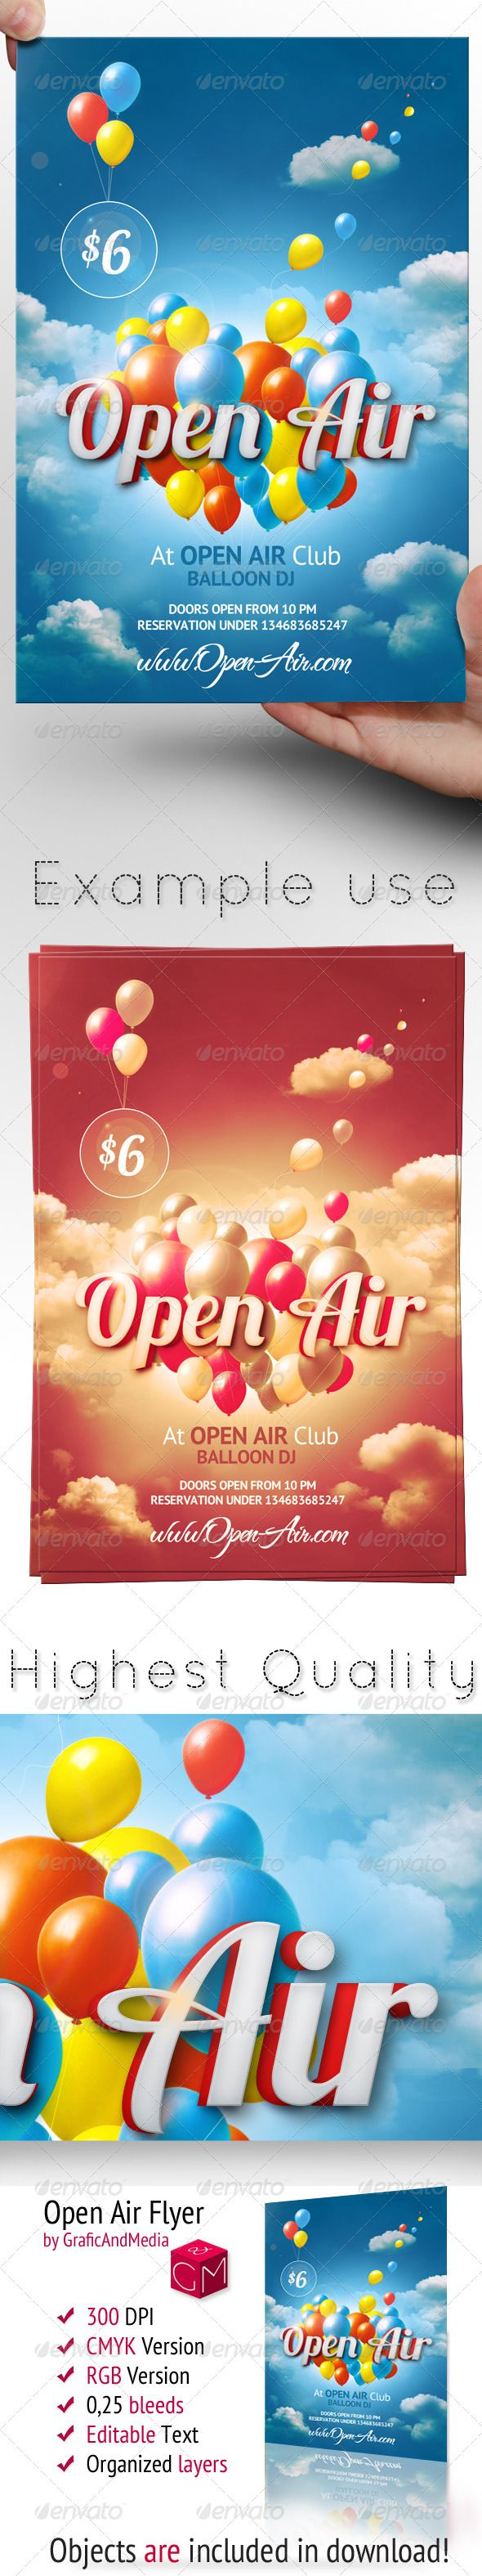 Open Air Flyer Template #GraphicRiver Open Air Flyer Template This Open Air flyer is perfect for following flyer templates / Poster templates: Summer Flyer, Spring Flyer, Spring Break Flyer, Birthday Flyer, Outdoor flyer, Church Flyer or even as a nightclub flyer! Files contain CMYK Template RGB Template Documentation with non-standard fonts (Download Links) Files feature 6×4Inch Print Ready CMYK High Quality 300dpi 0,25Inch Bleed (0,125 on each side) Organized Groups...